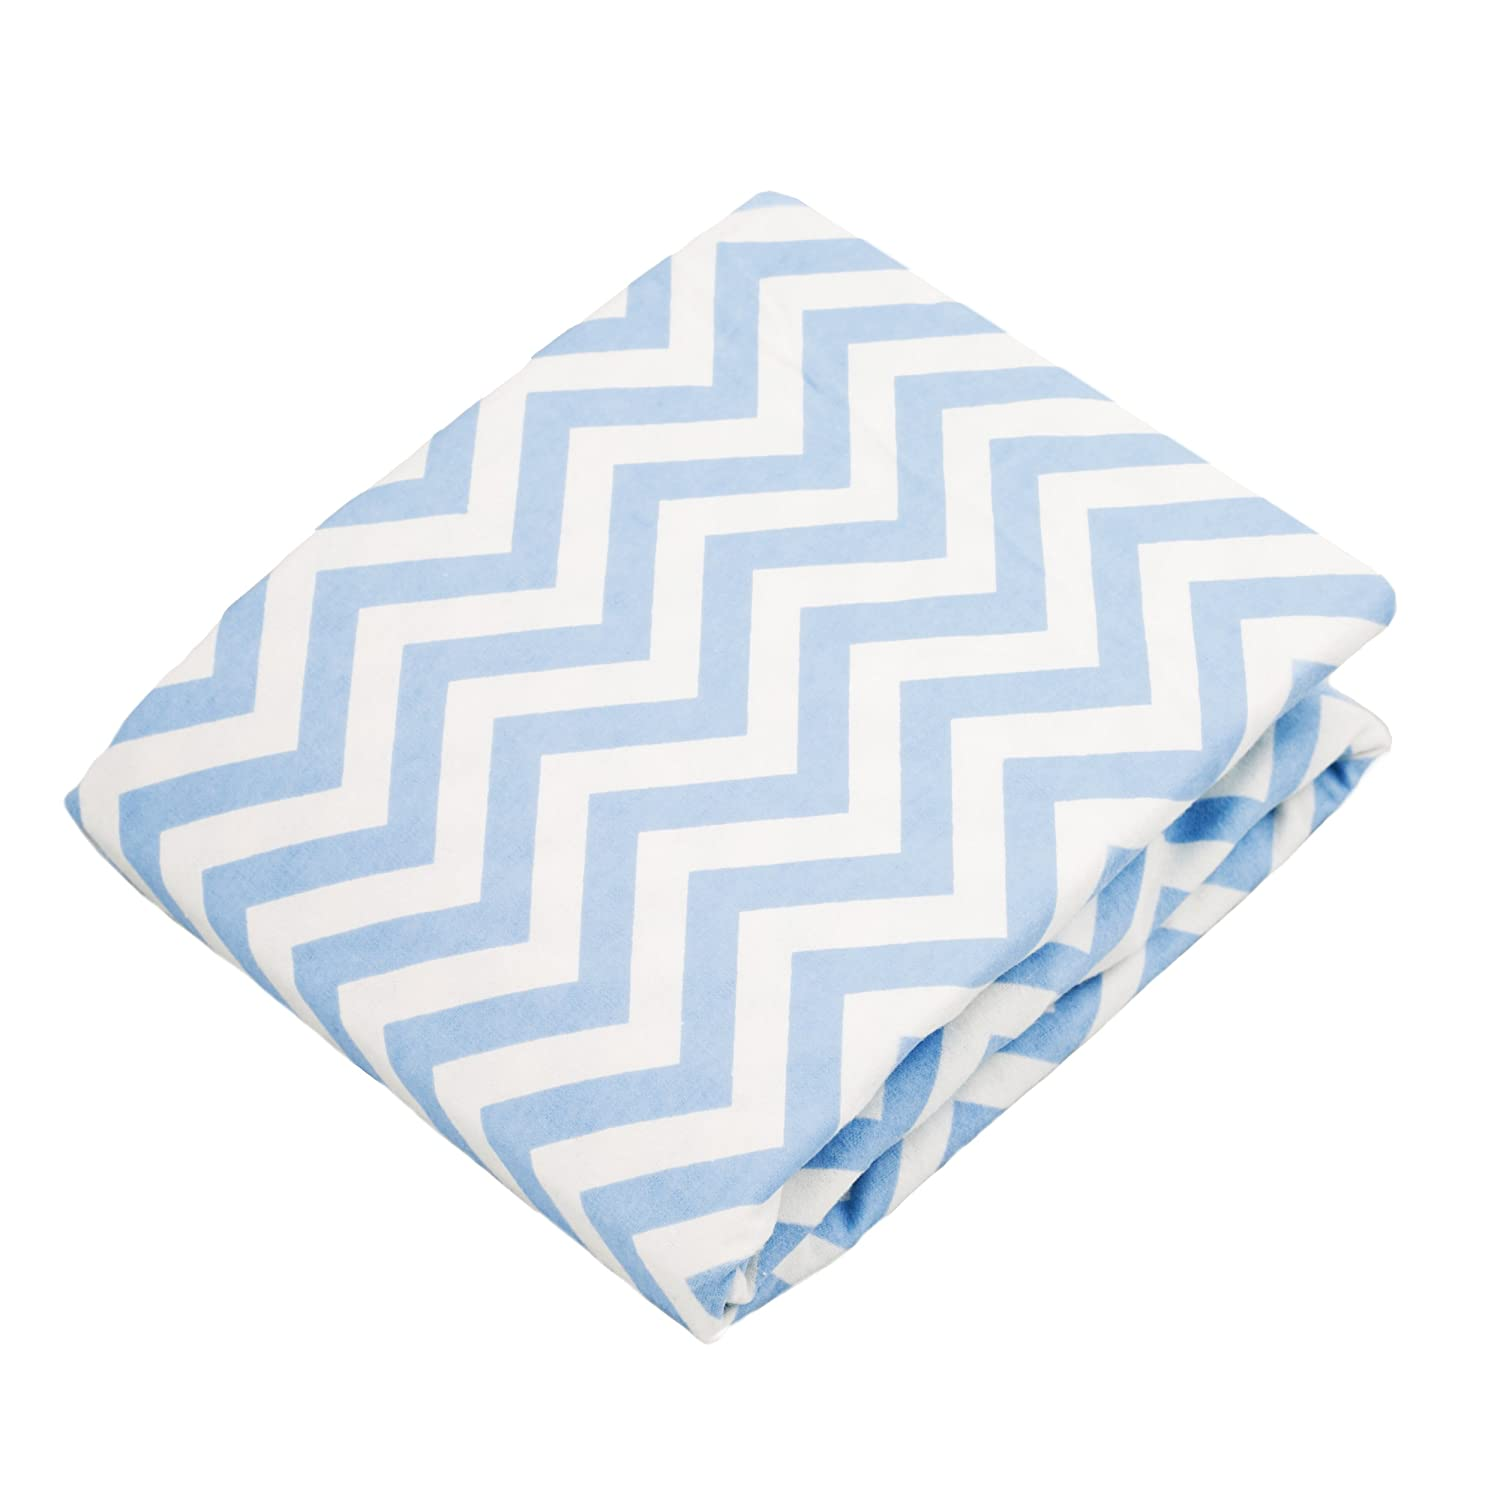 Kushies Changing Pad Cover for 1 pad, 100% breathable cotton, Made in Canada, Blue Chevron Kushies Baby S340-505